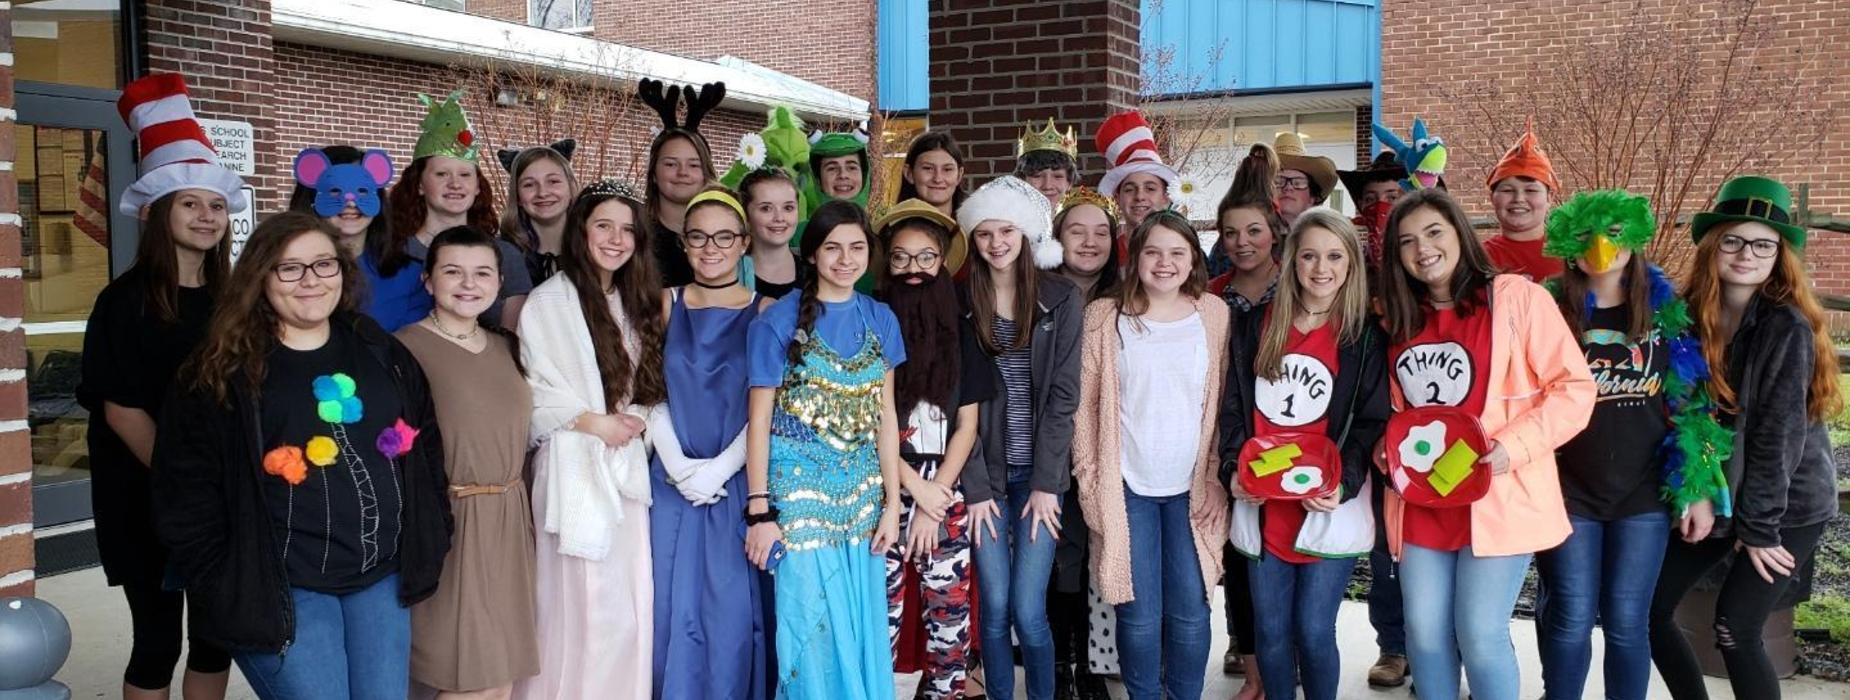 Beta Club dressed up for Read Across America